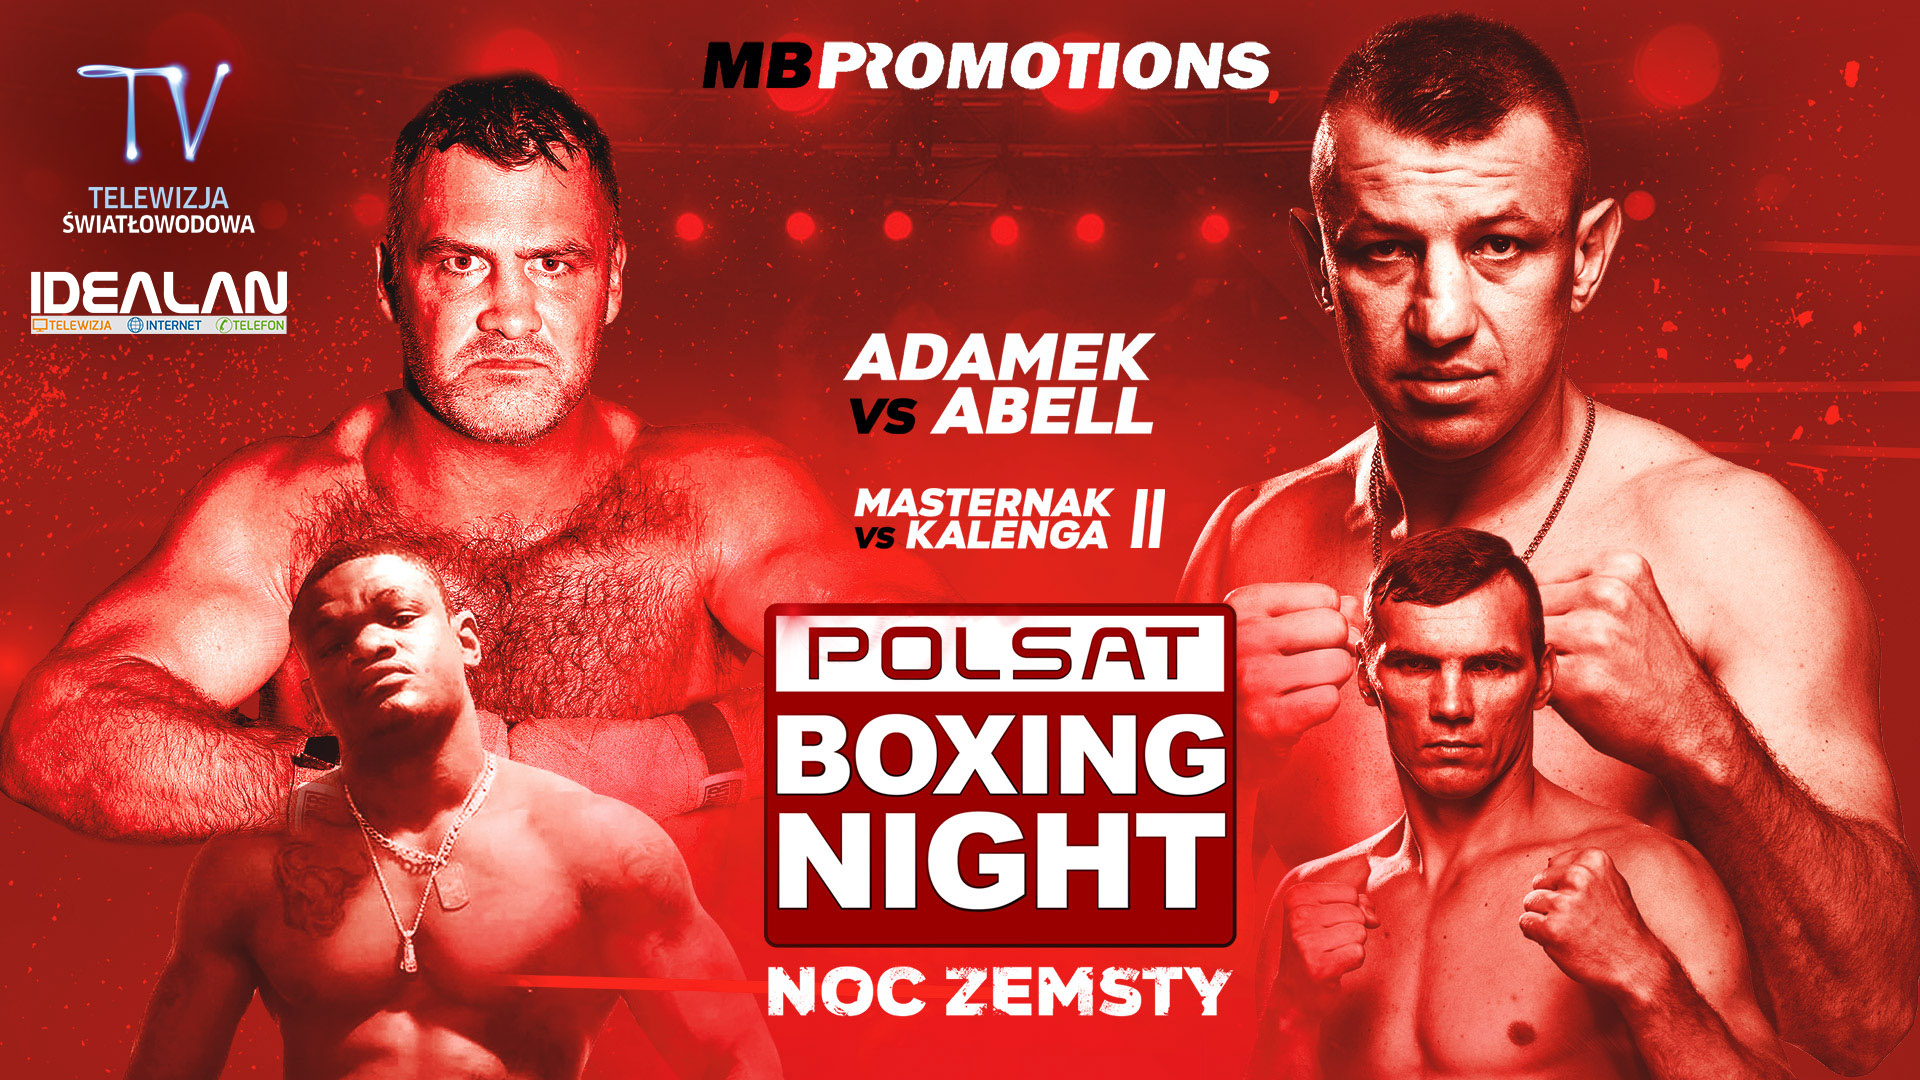 Polsat BOXING NIGHT noc zemsty